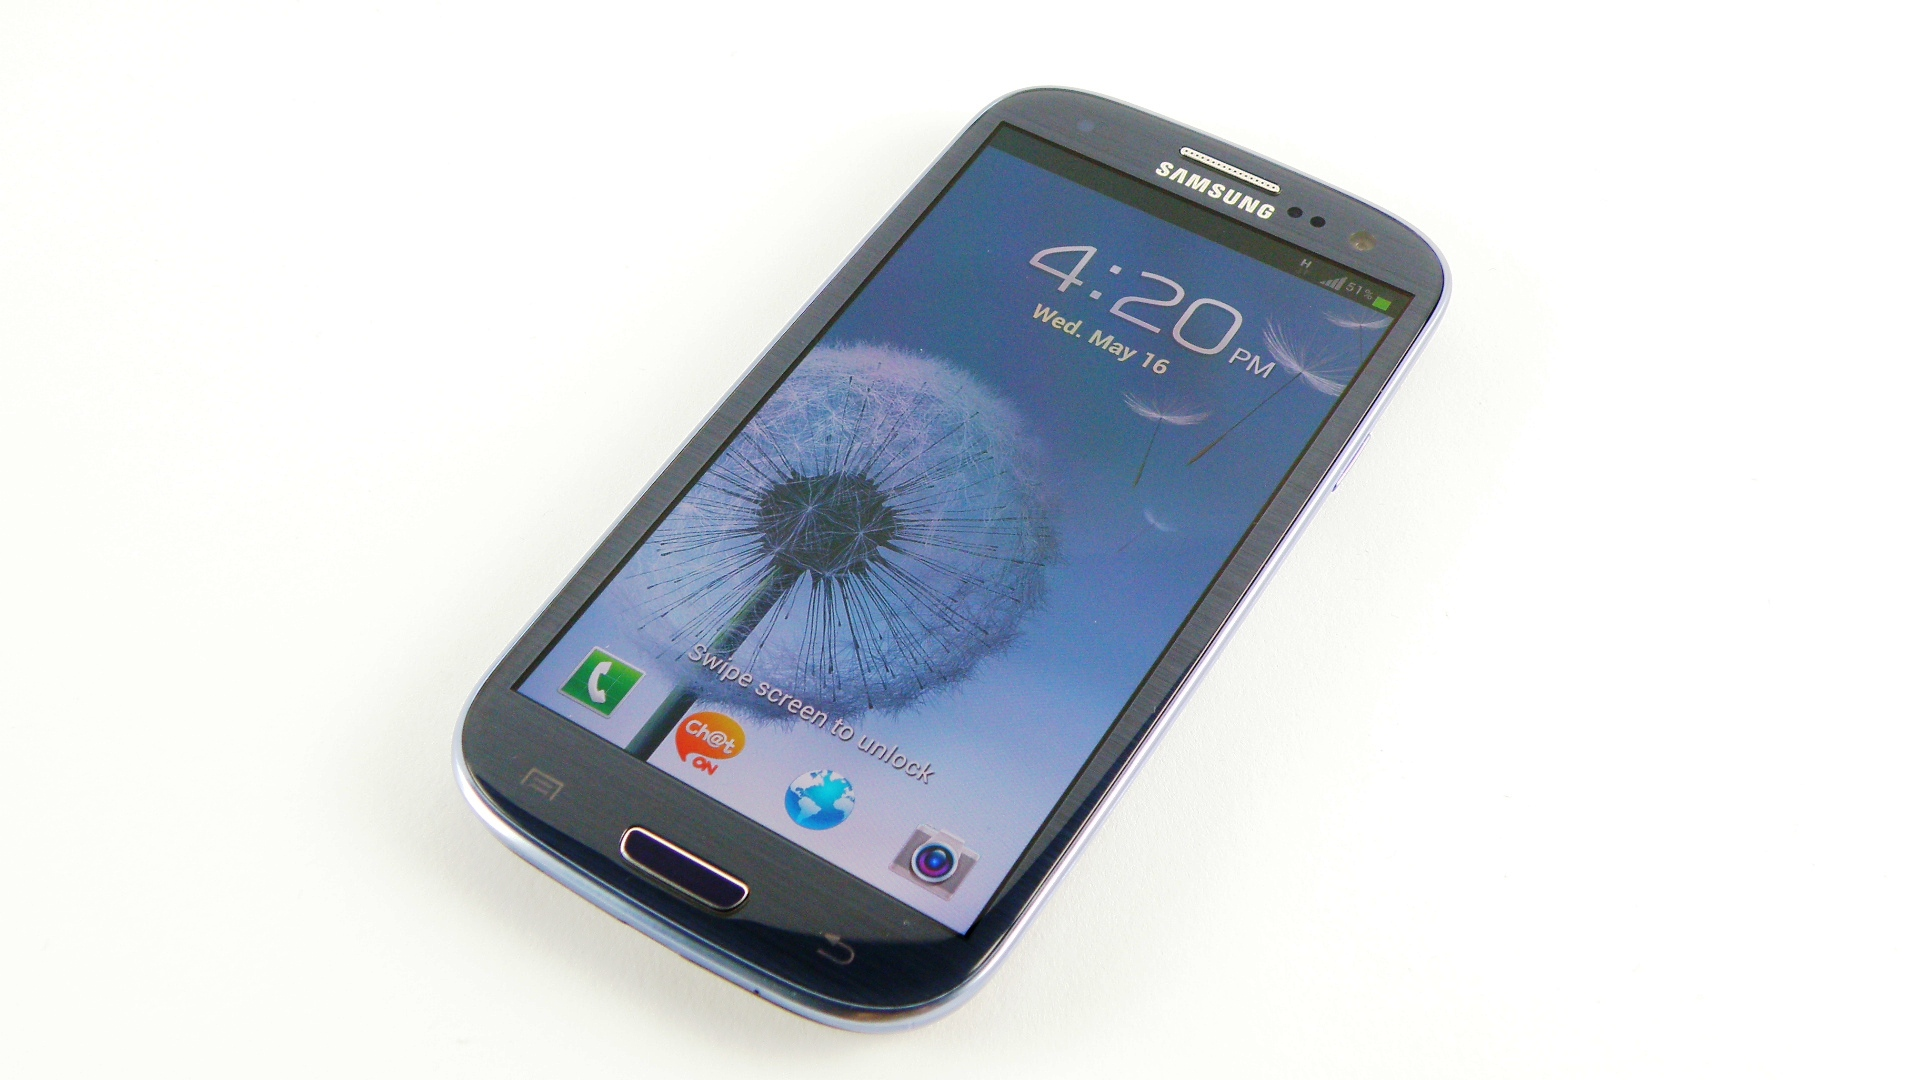 Best Samsung Galaxy S3 apps: top apps for your new S3